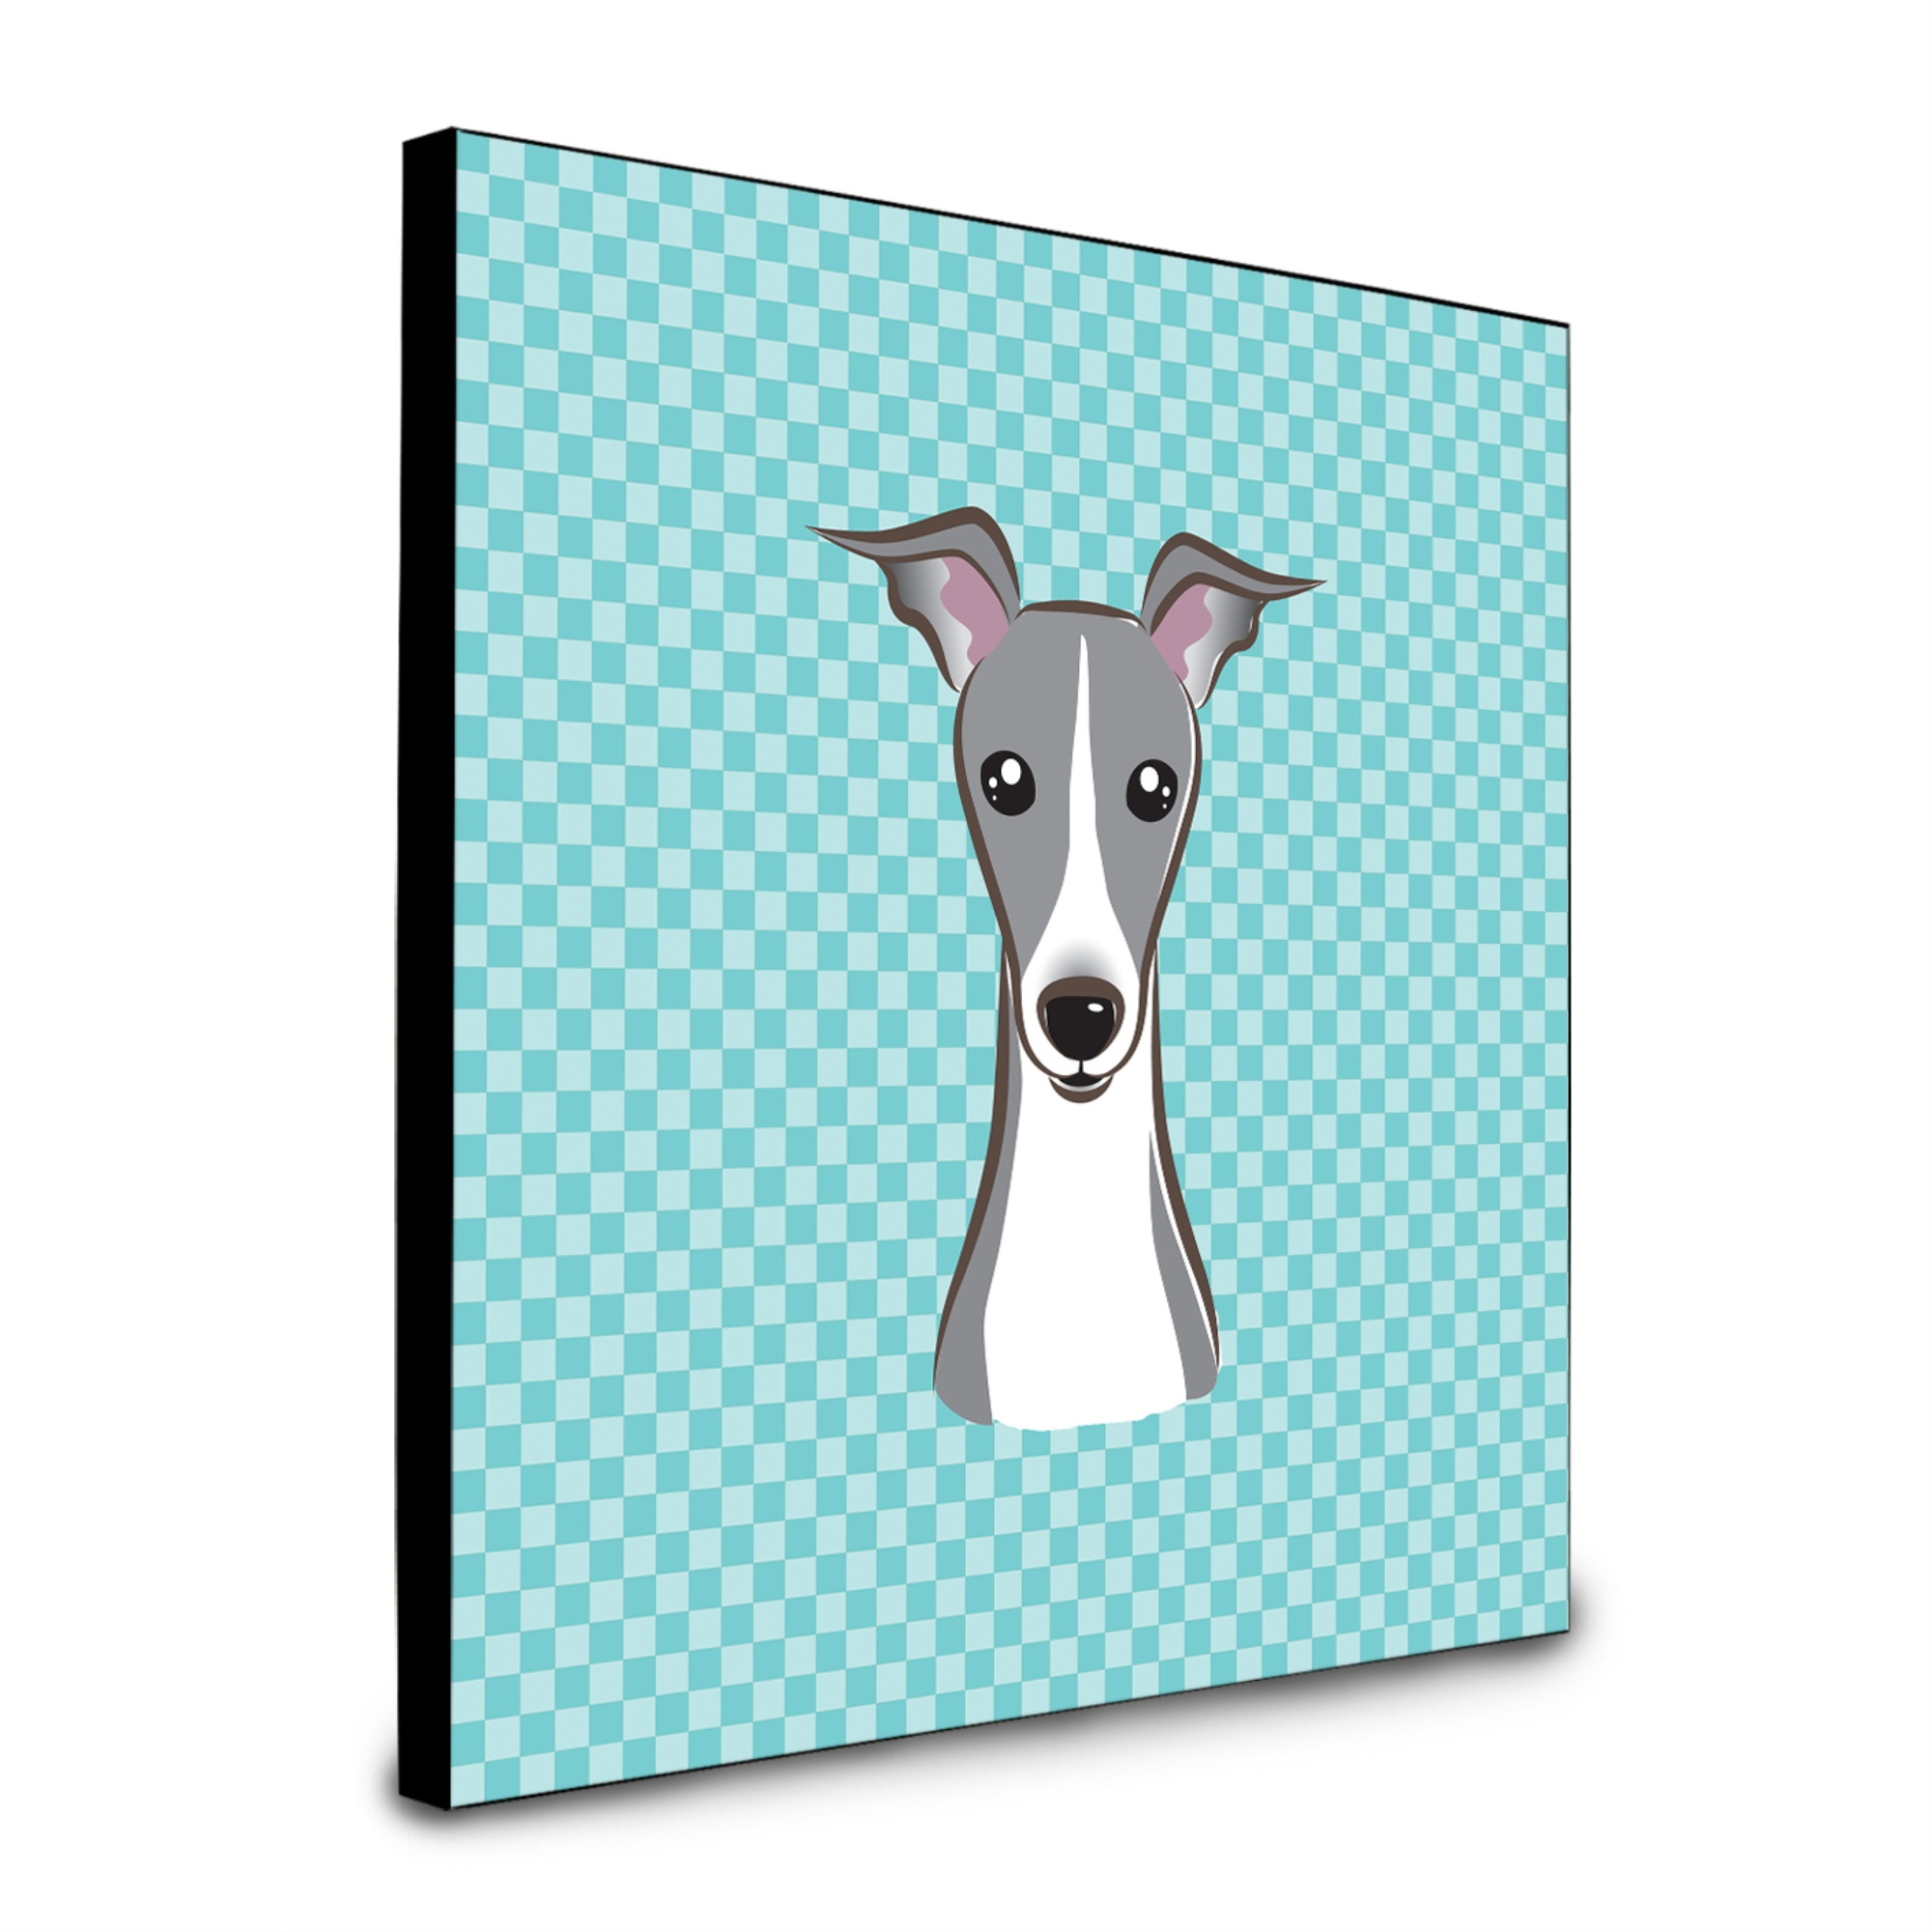 Greyhound Free standing MDF floor clock with an image of a dog.